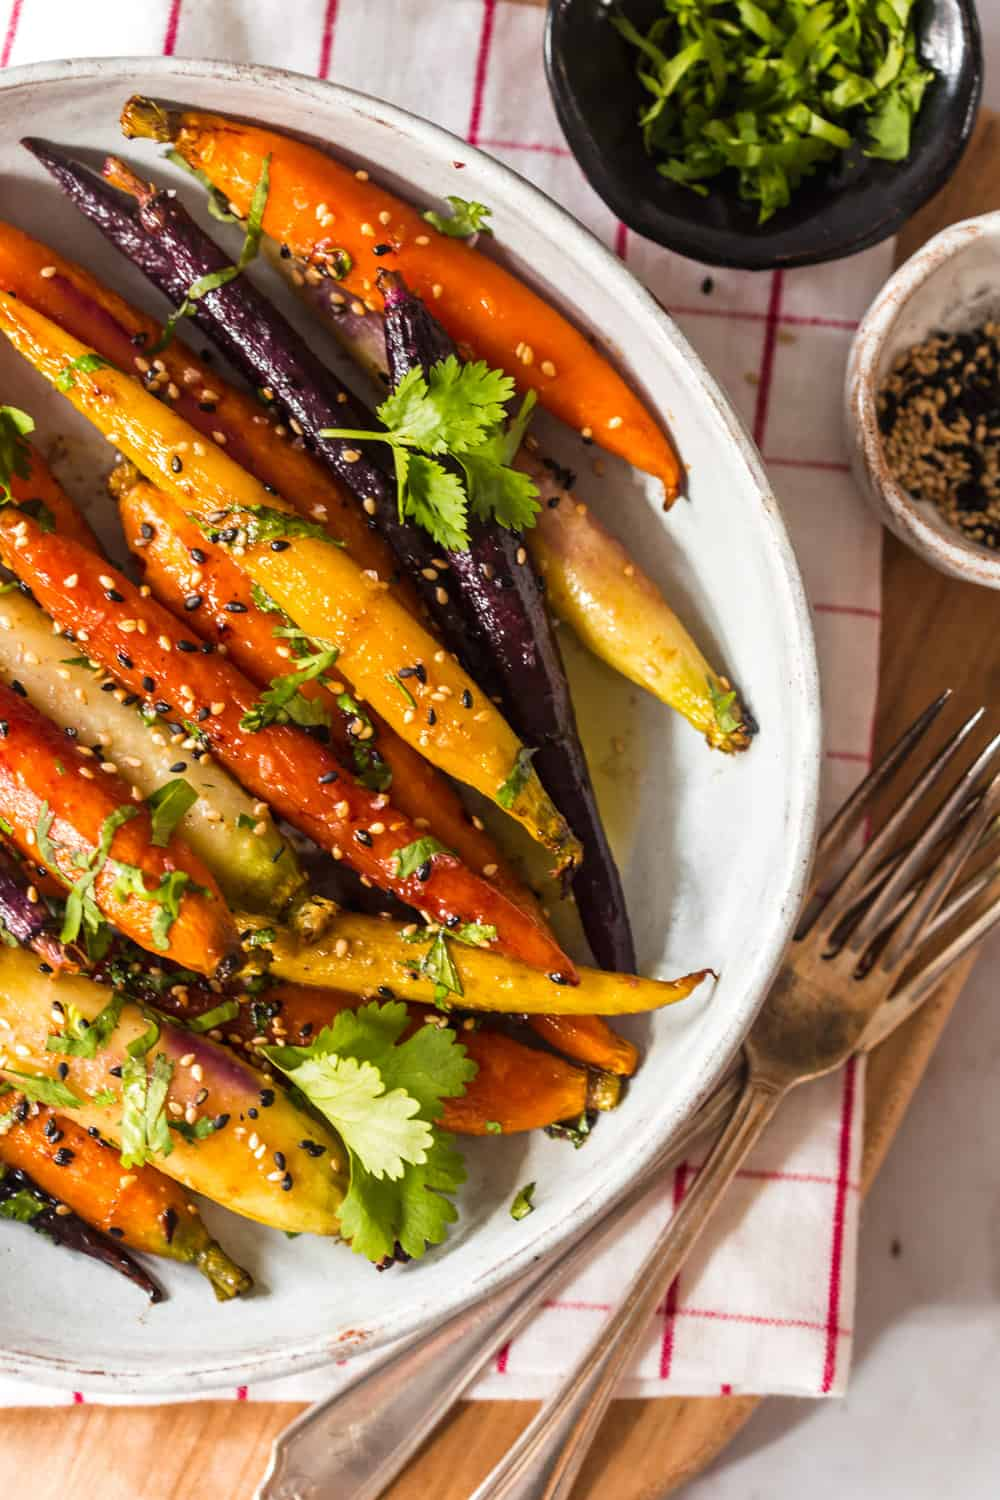 Close up of multicolored glazed carrots with sesame seeds and cilantro on top.